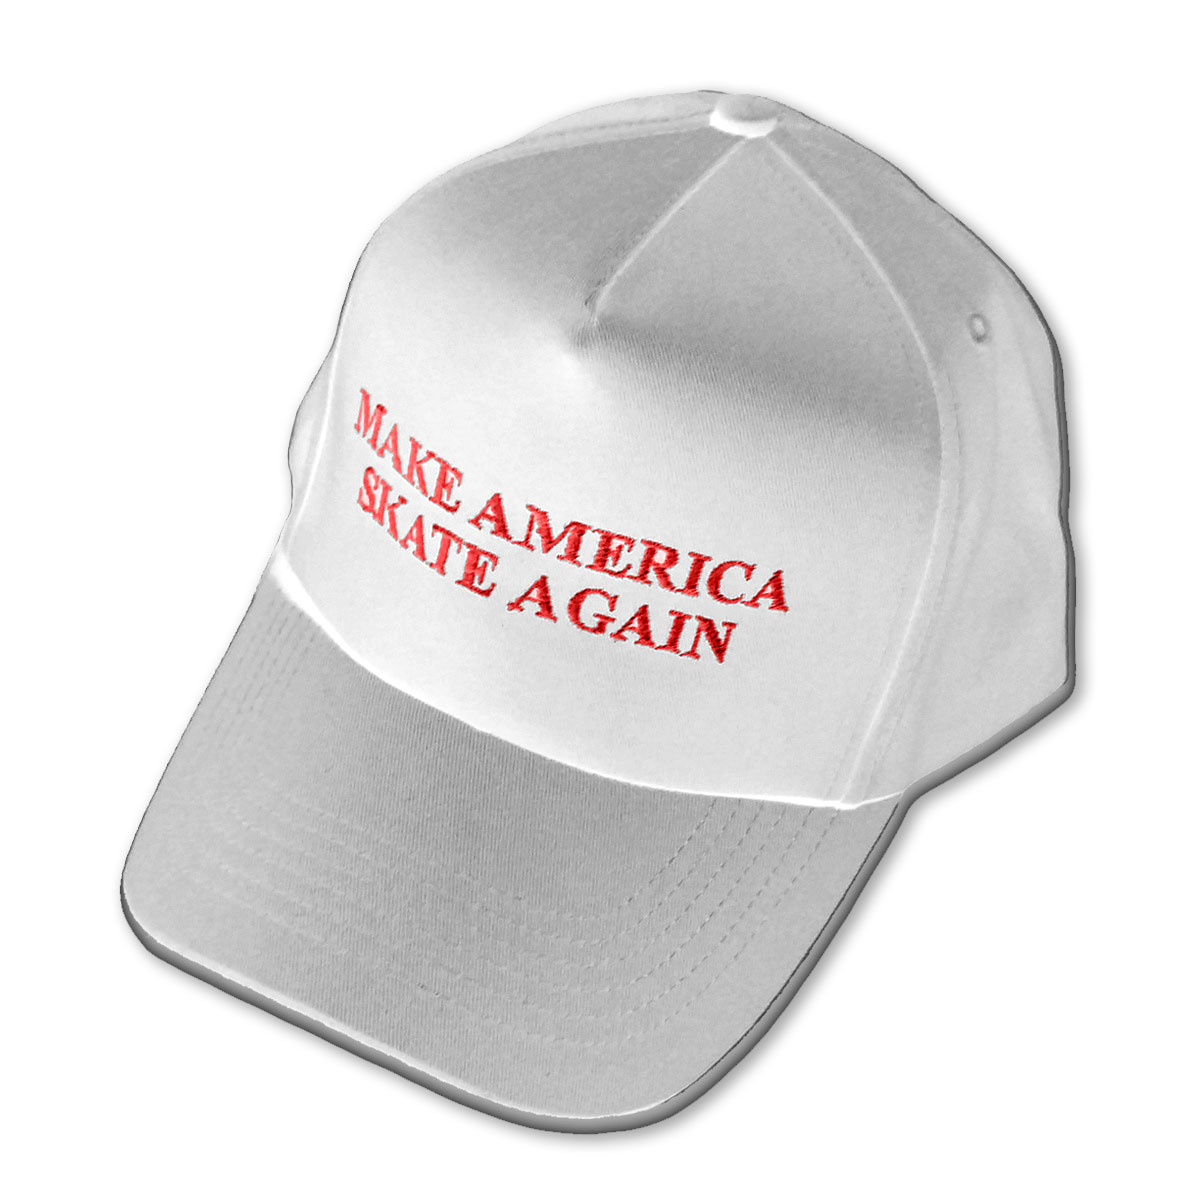 Make America Skate Again Hat White